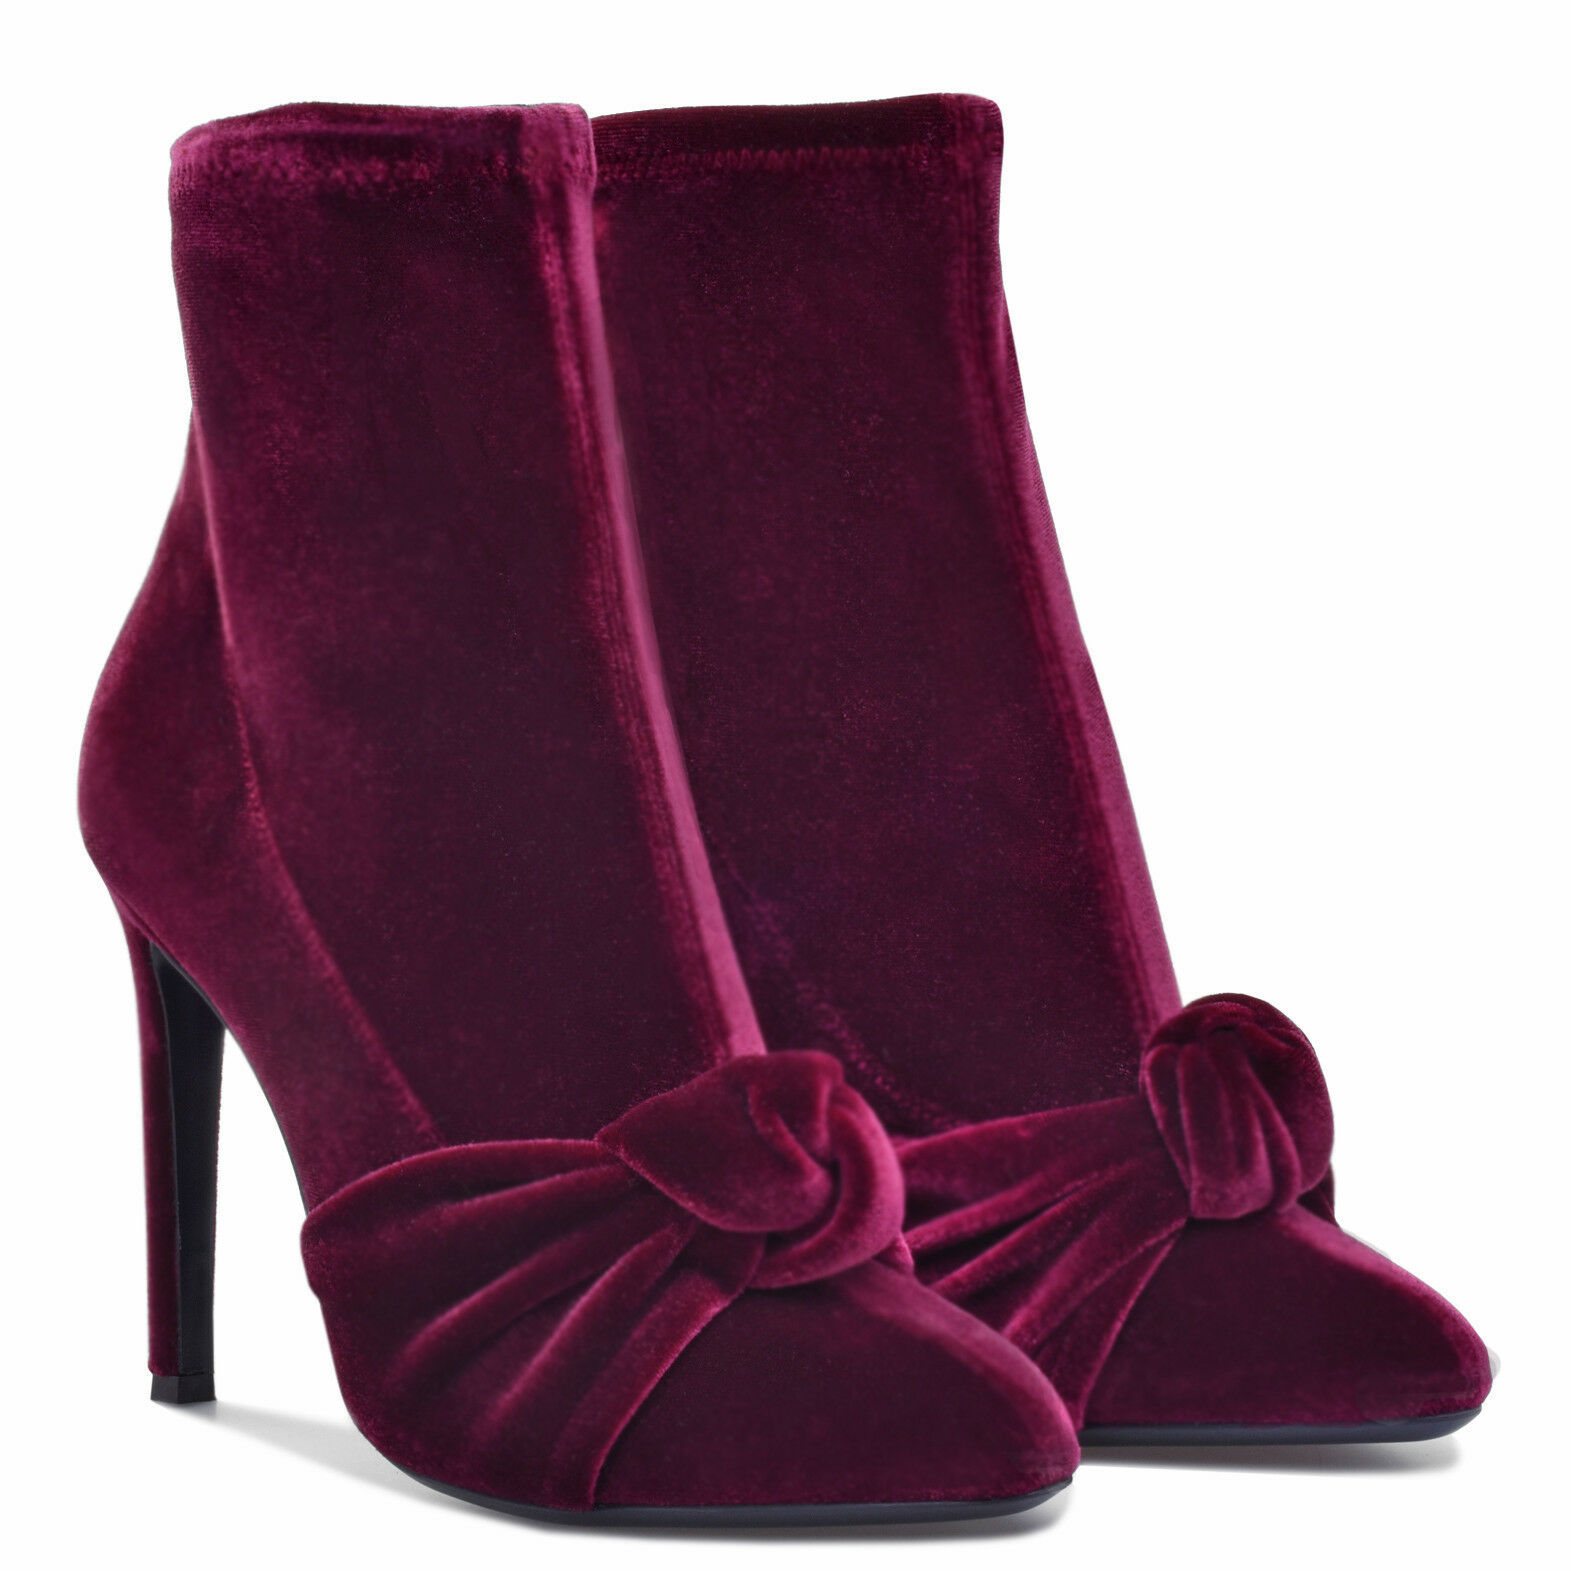 WOmen's High Heels Stilettos Pointed toe Velet Bowknot Ankle Boots US4.5-11.5